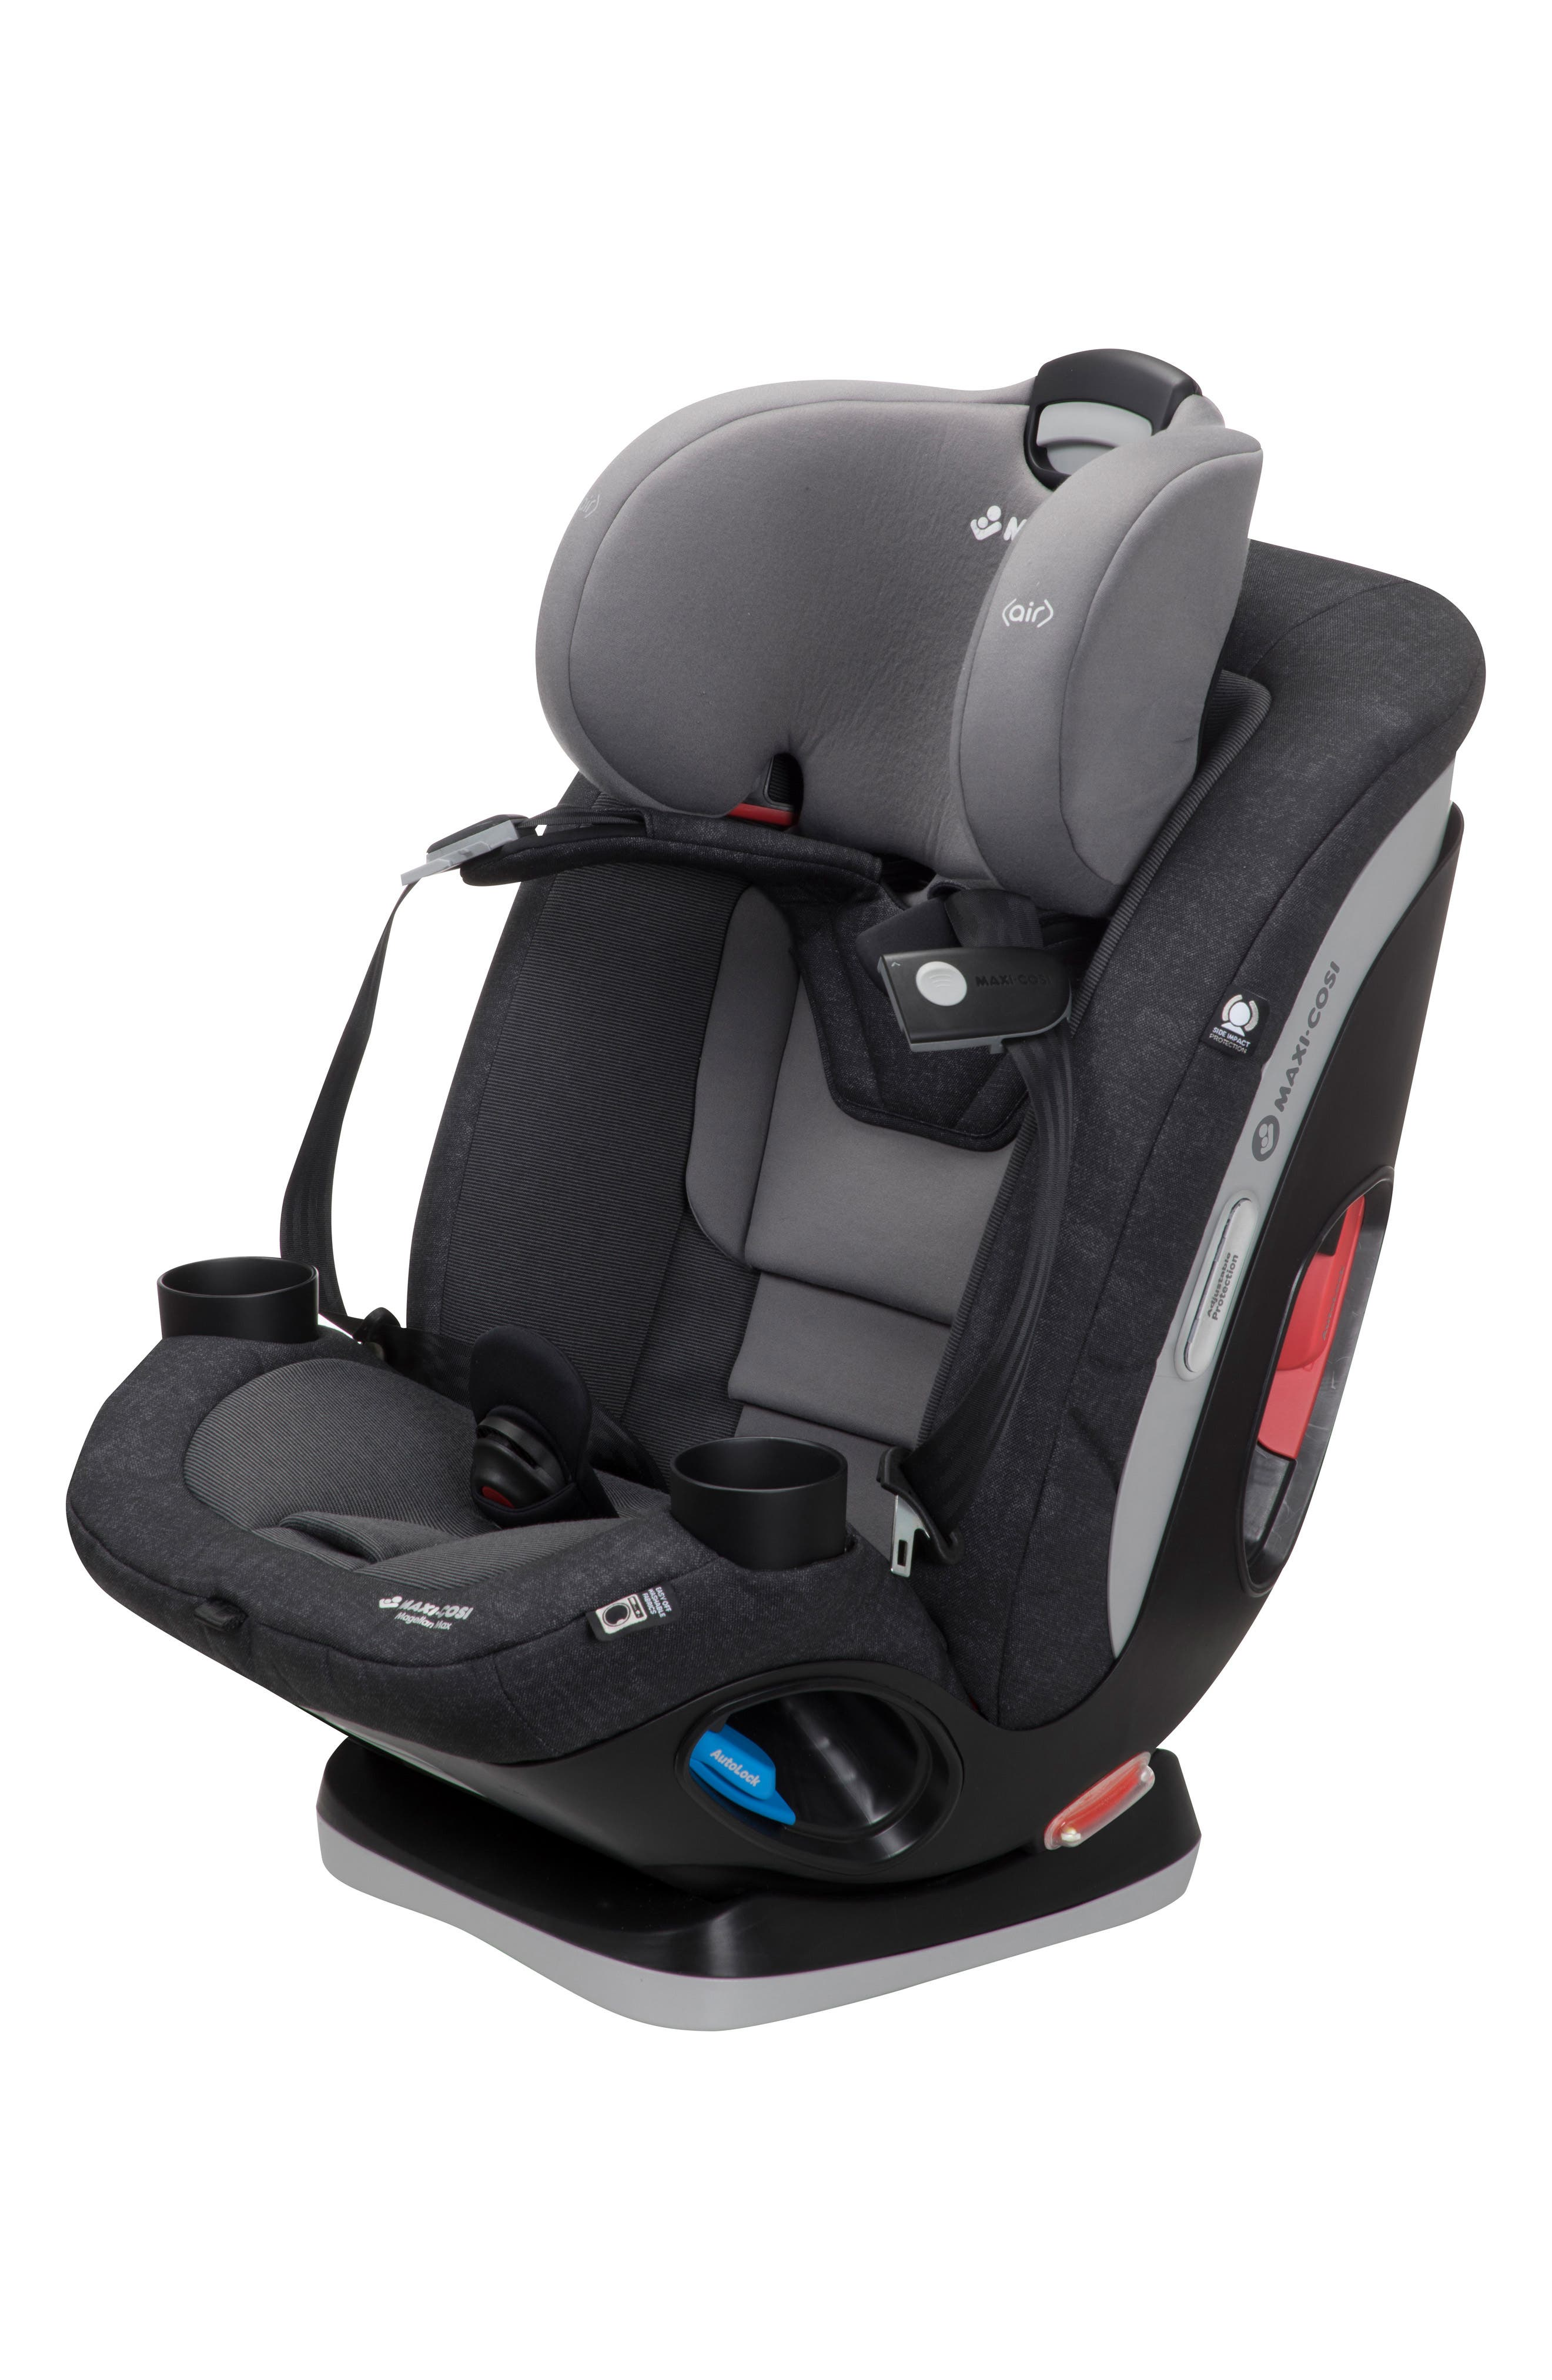 Magellan Max 2018 5-in-1 Convertible Car Seat,                             Alternate thumbnail 7, color,                             NOMAD BLACK